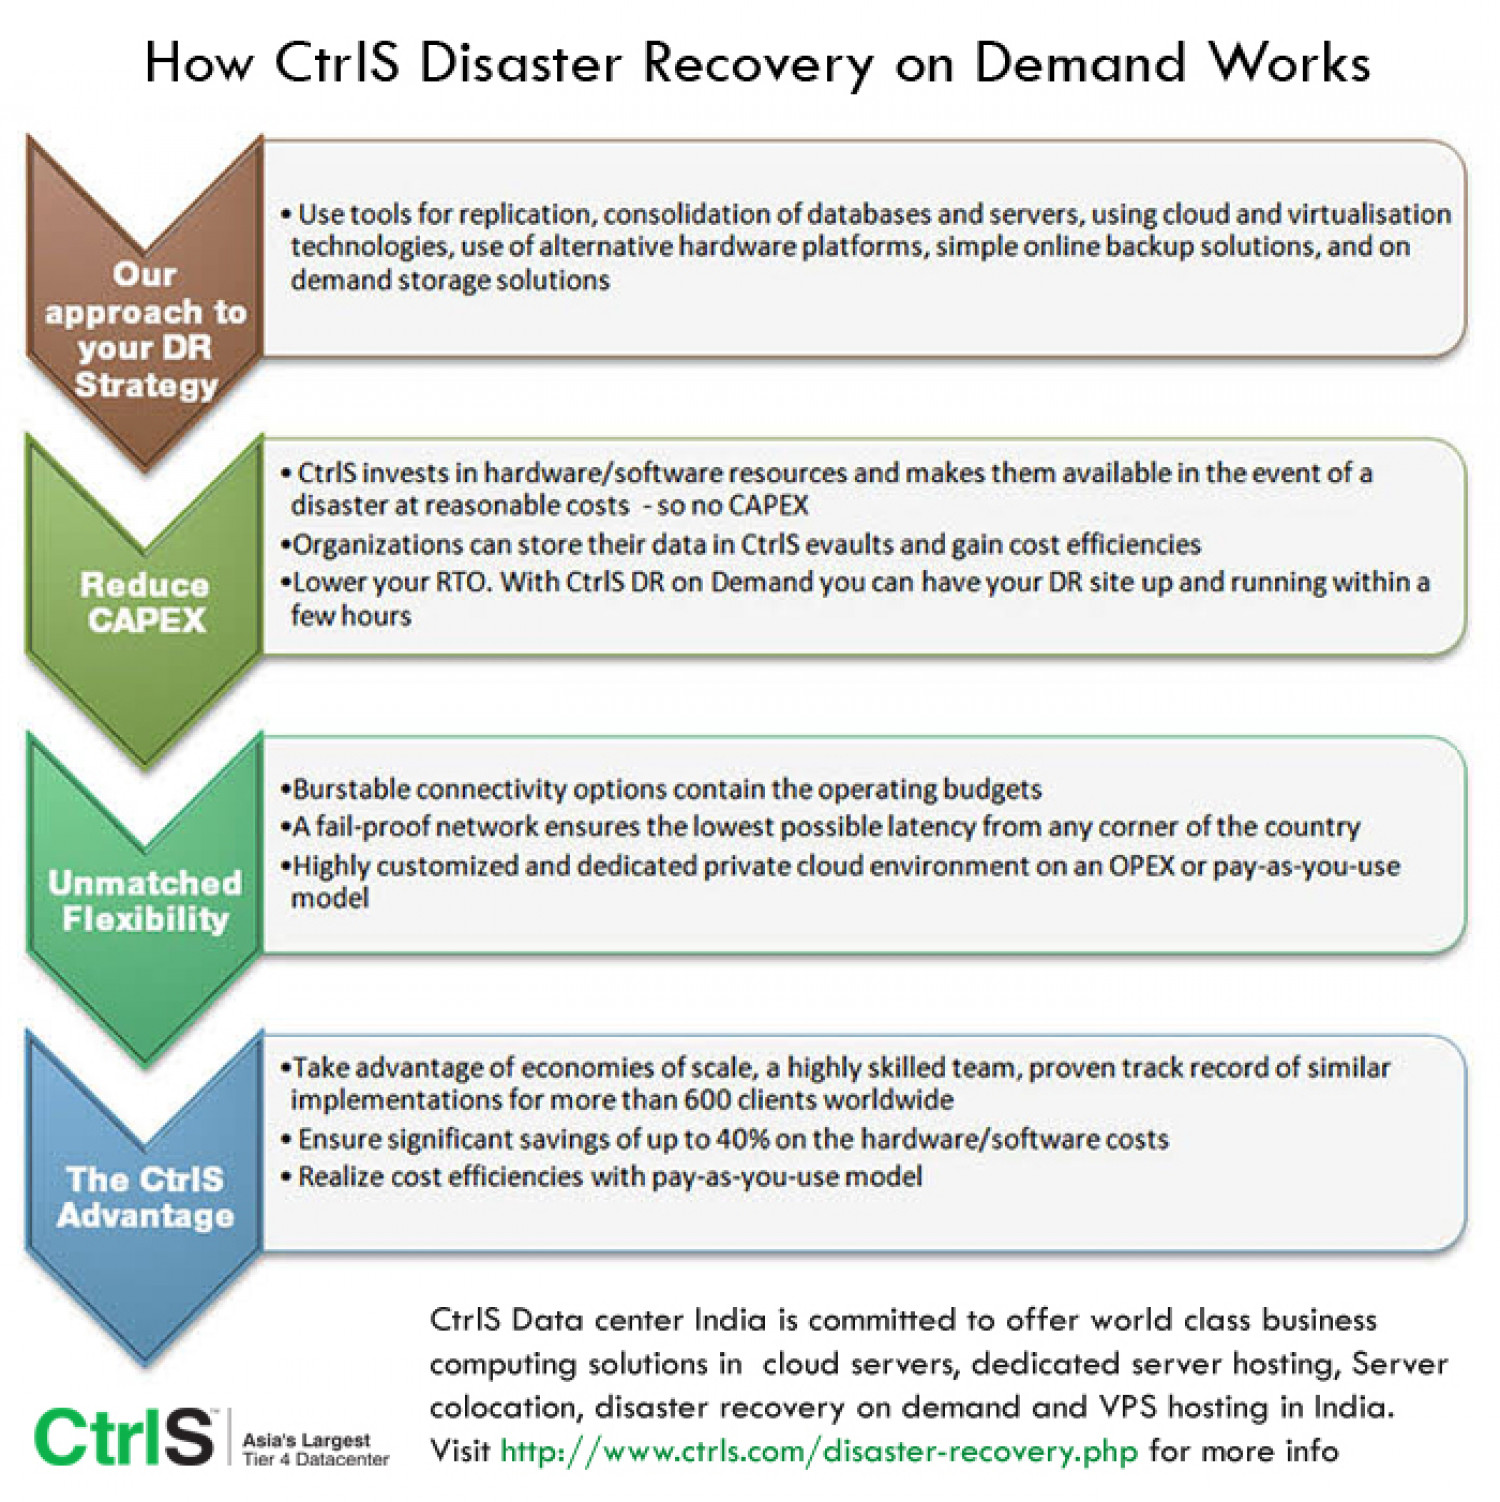 CtrlS Disaster Recovery services on Demand Infographic